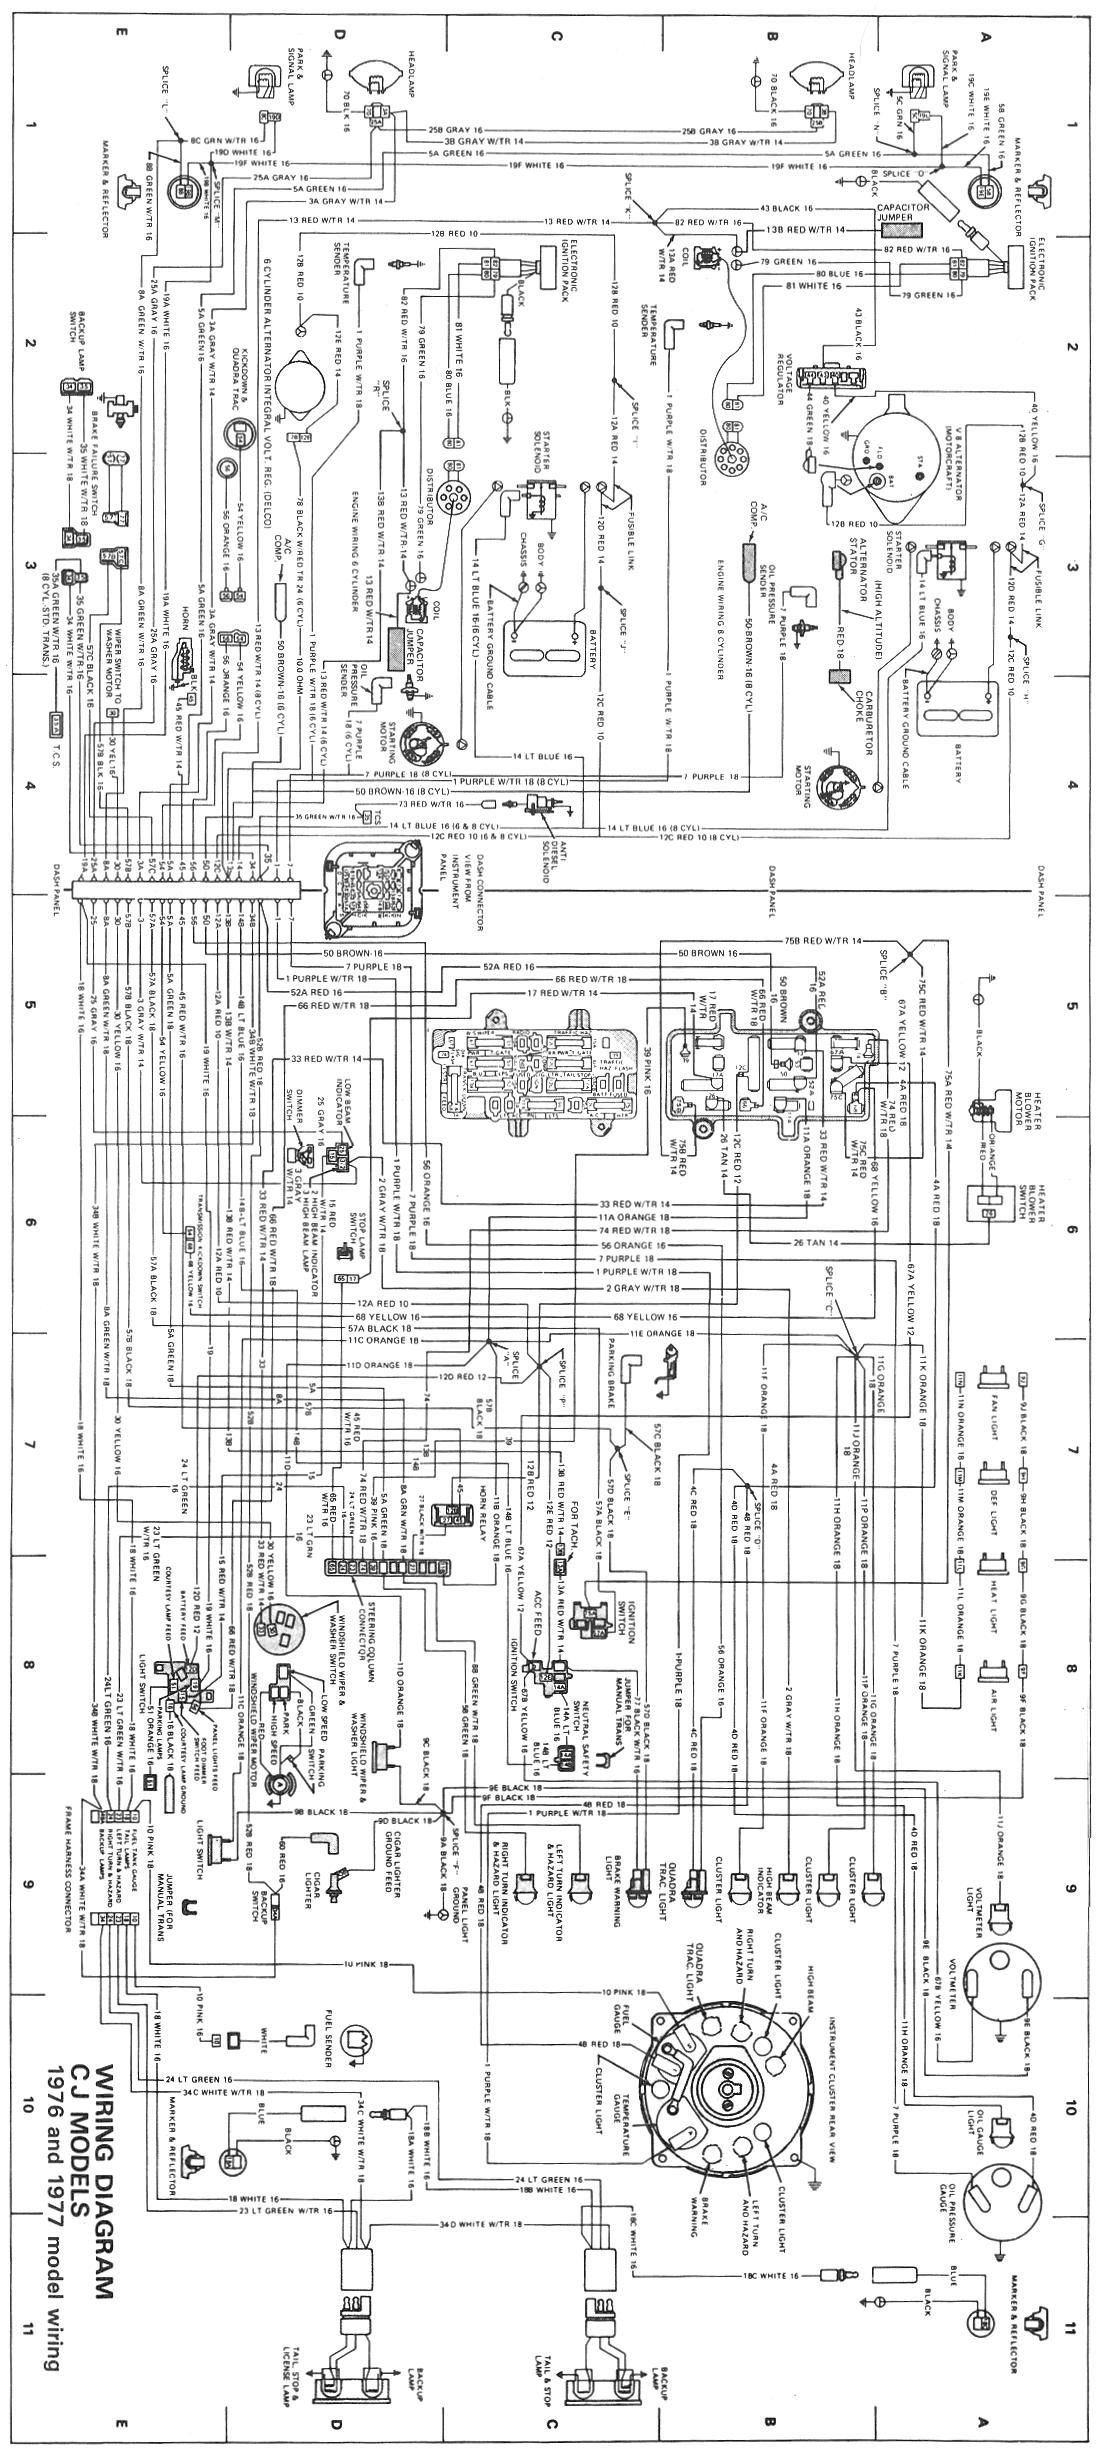 jeep cj wiring diagrams wiring diagram portal jeep wrangler wiring harness diagram 1986 jeep cj7 wiring [ 1100 x 2459 Pixel ]